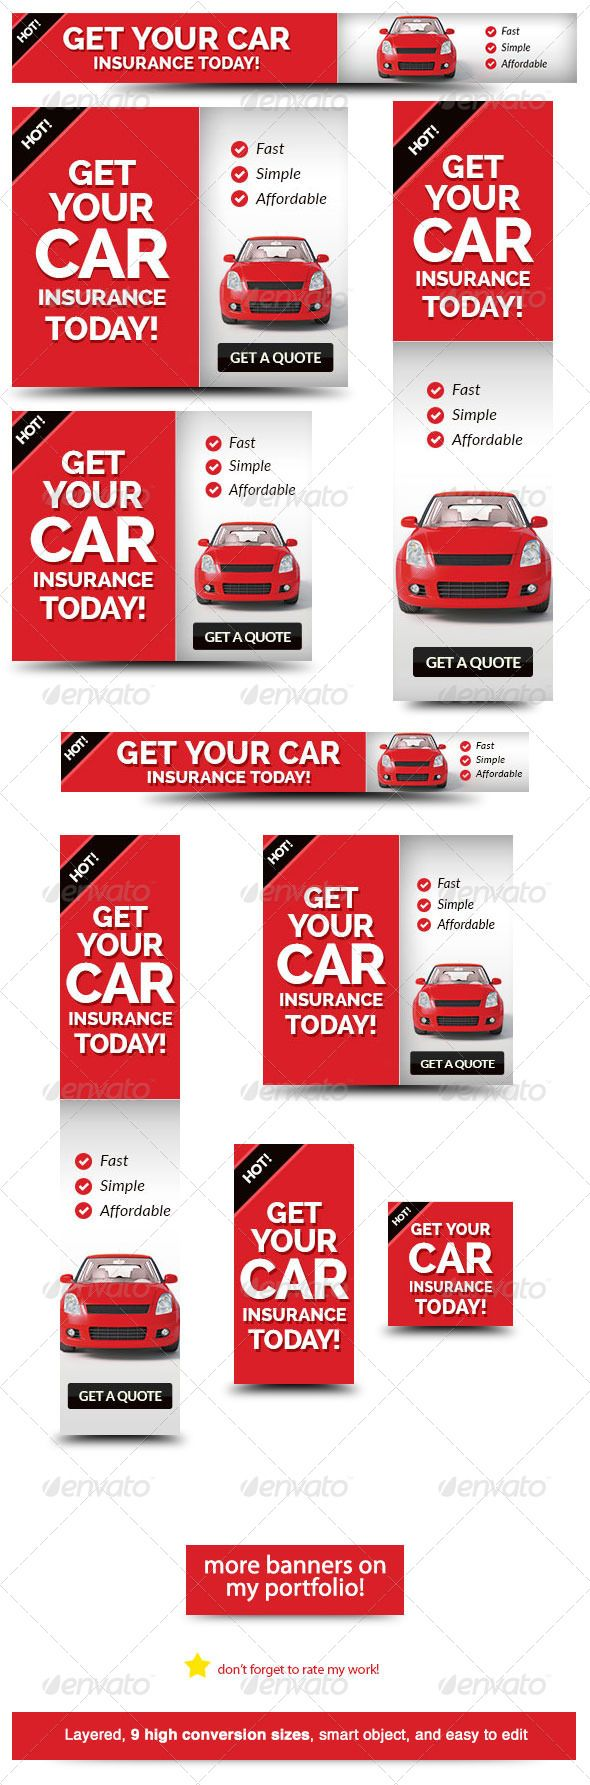 Cars, Car images and The banner on Pinterest